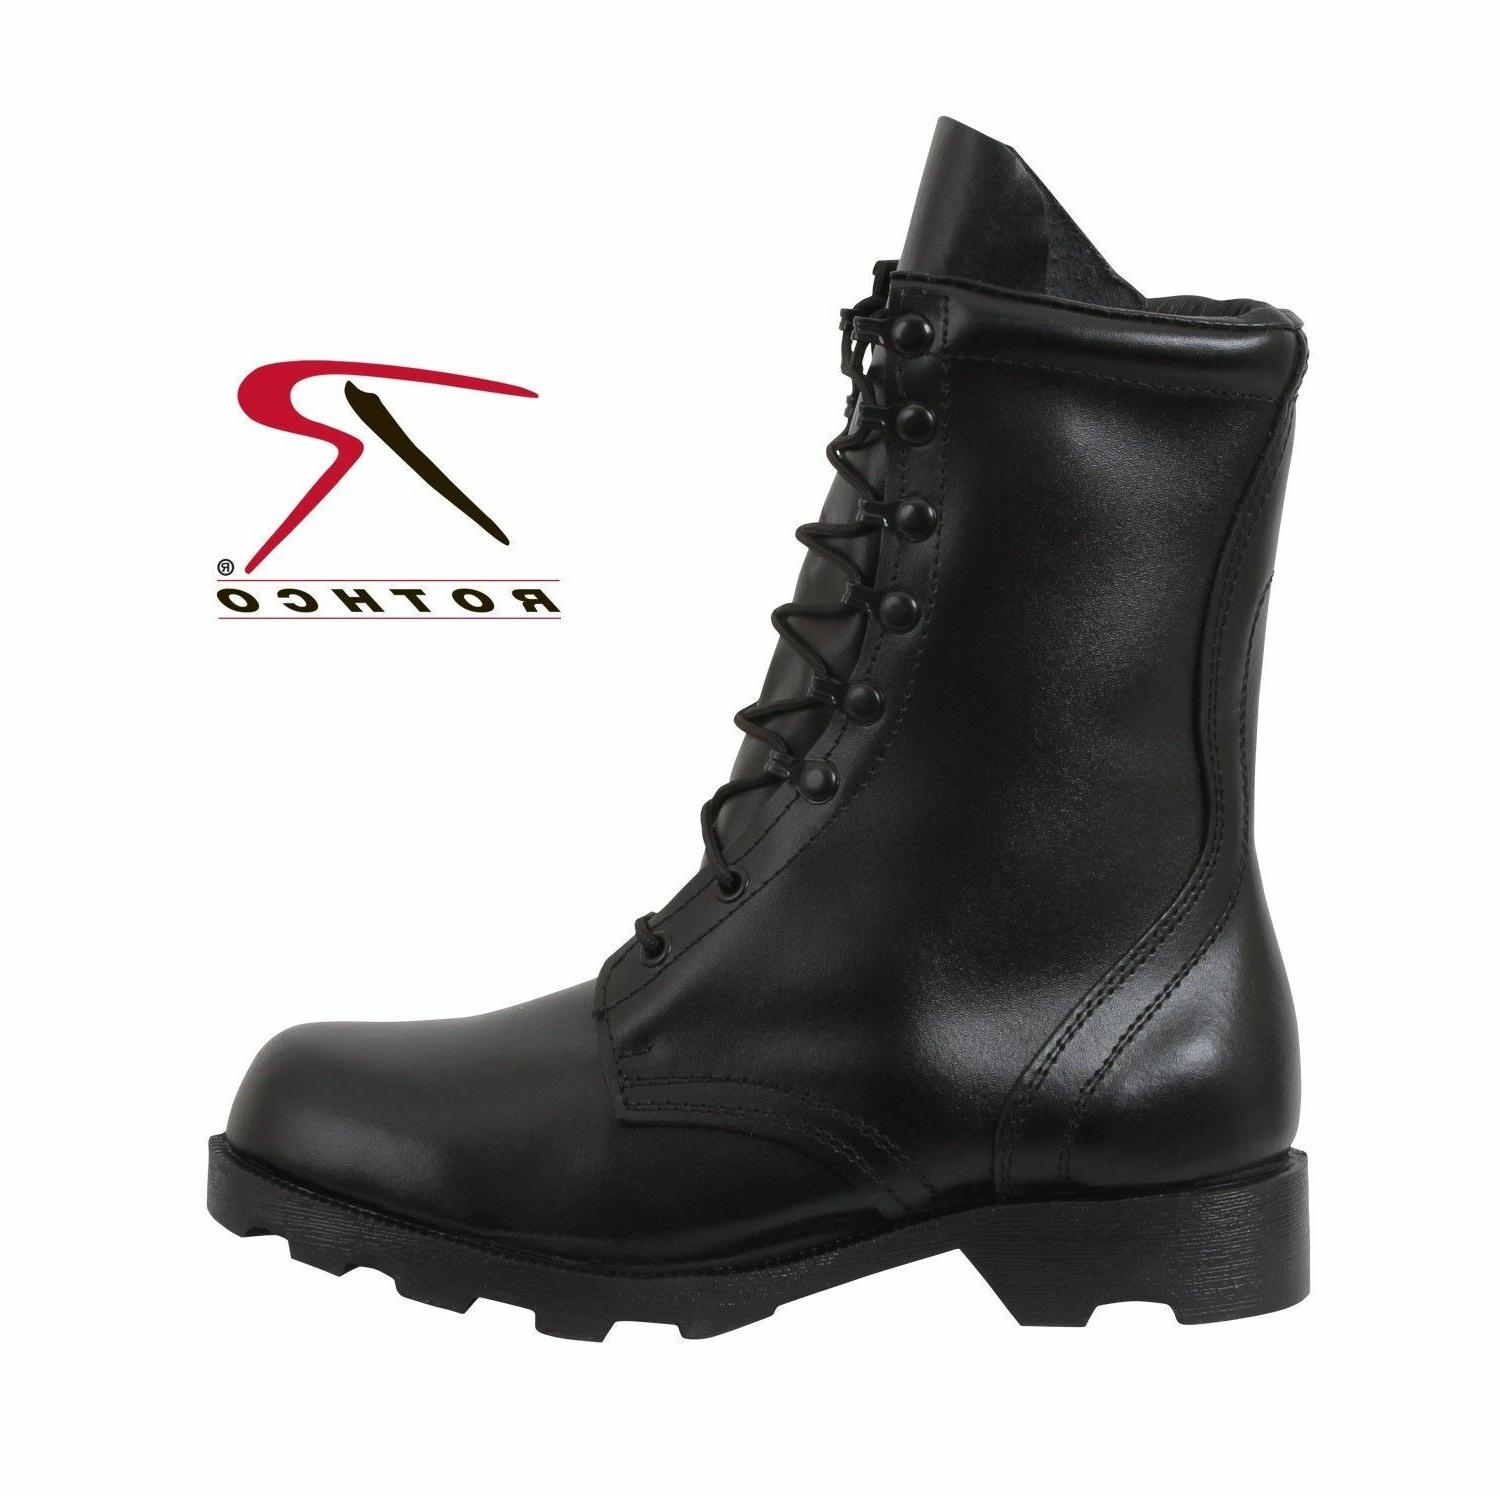 boots speedlace black leather army military combat10